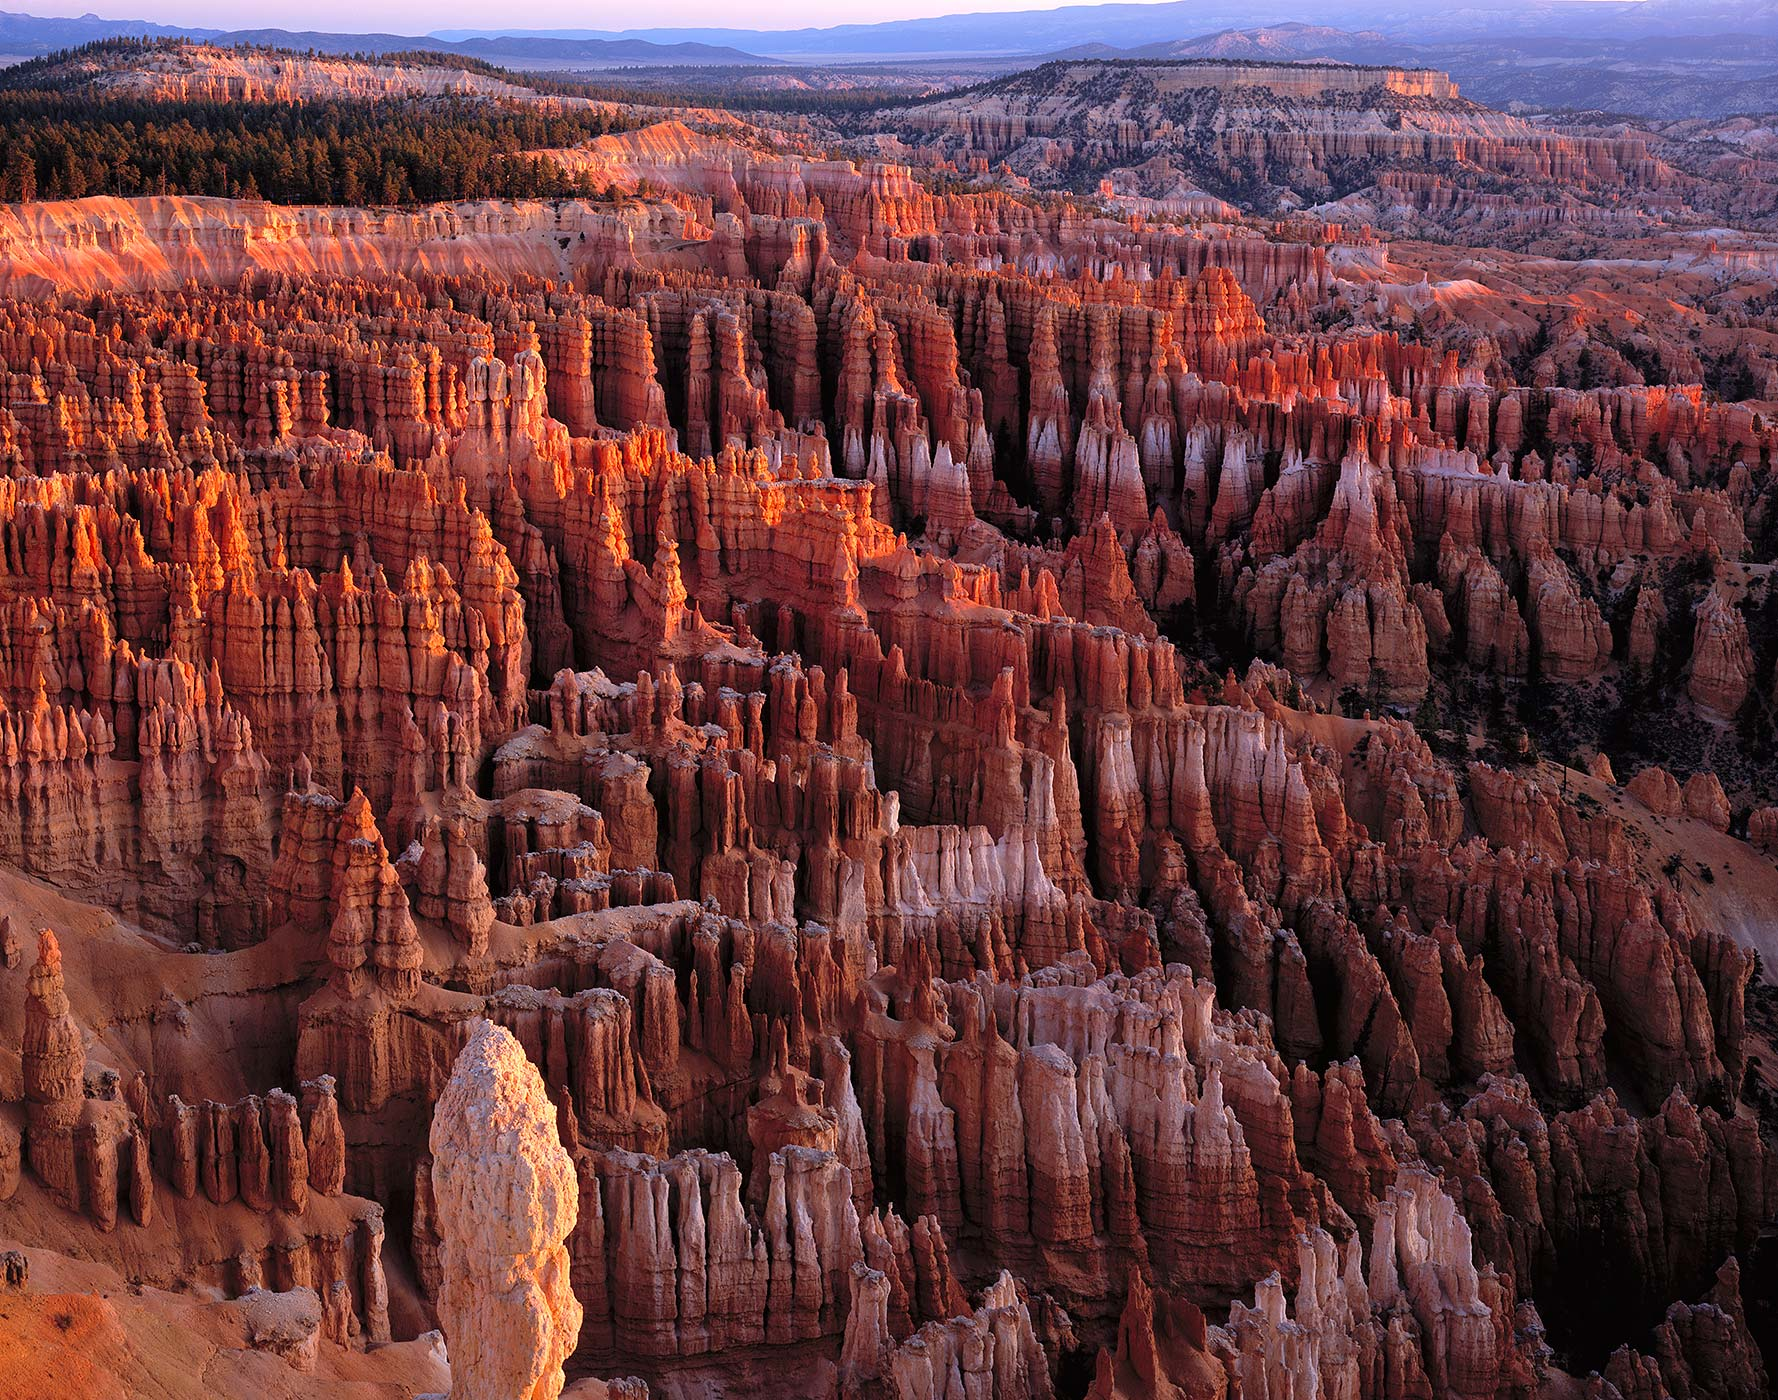 1023 Bryce Amphitheater, Sunrise, Bryce Canyon National Park, Utah